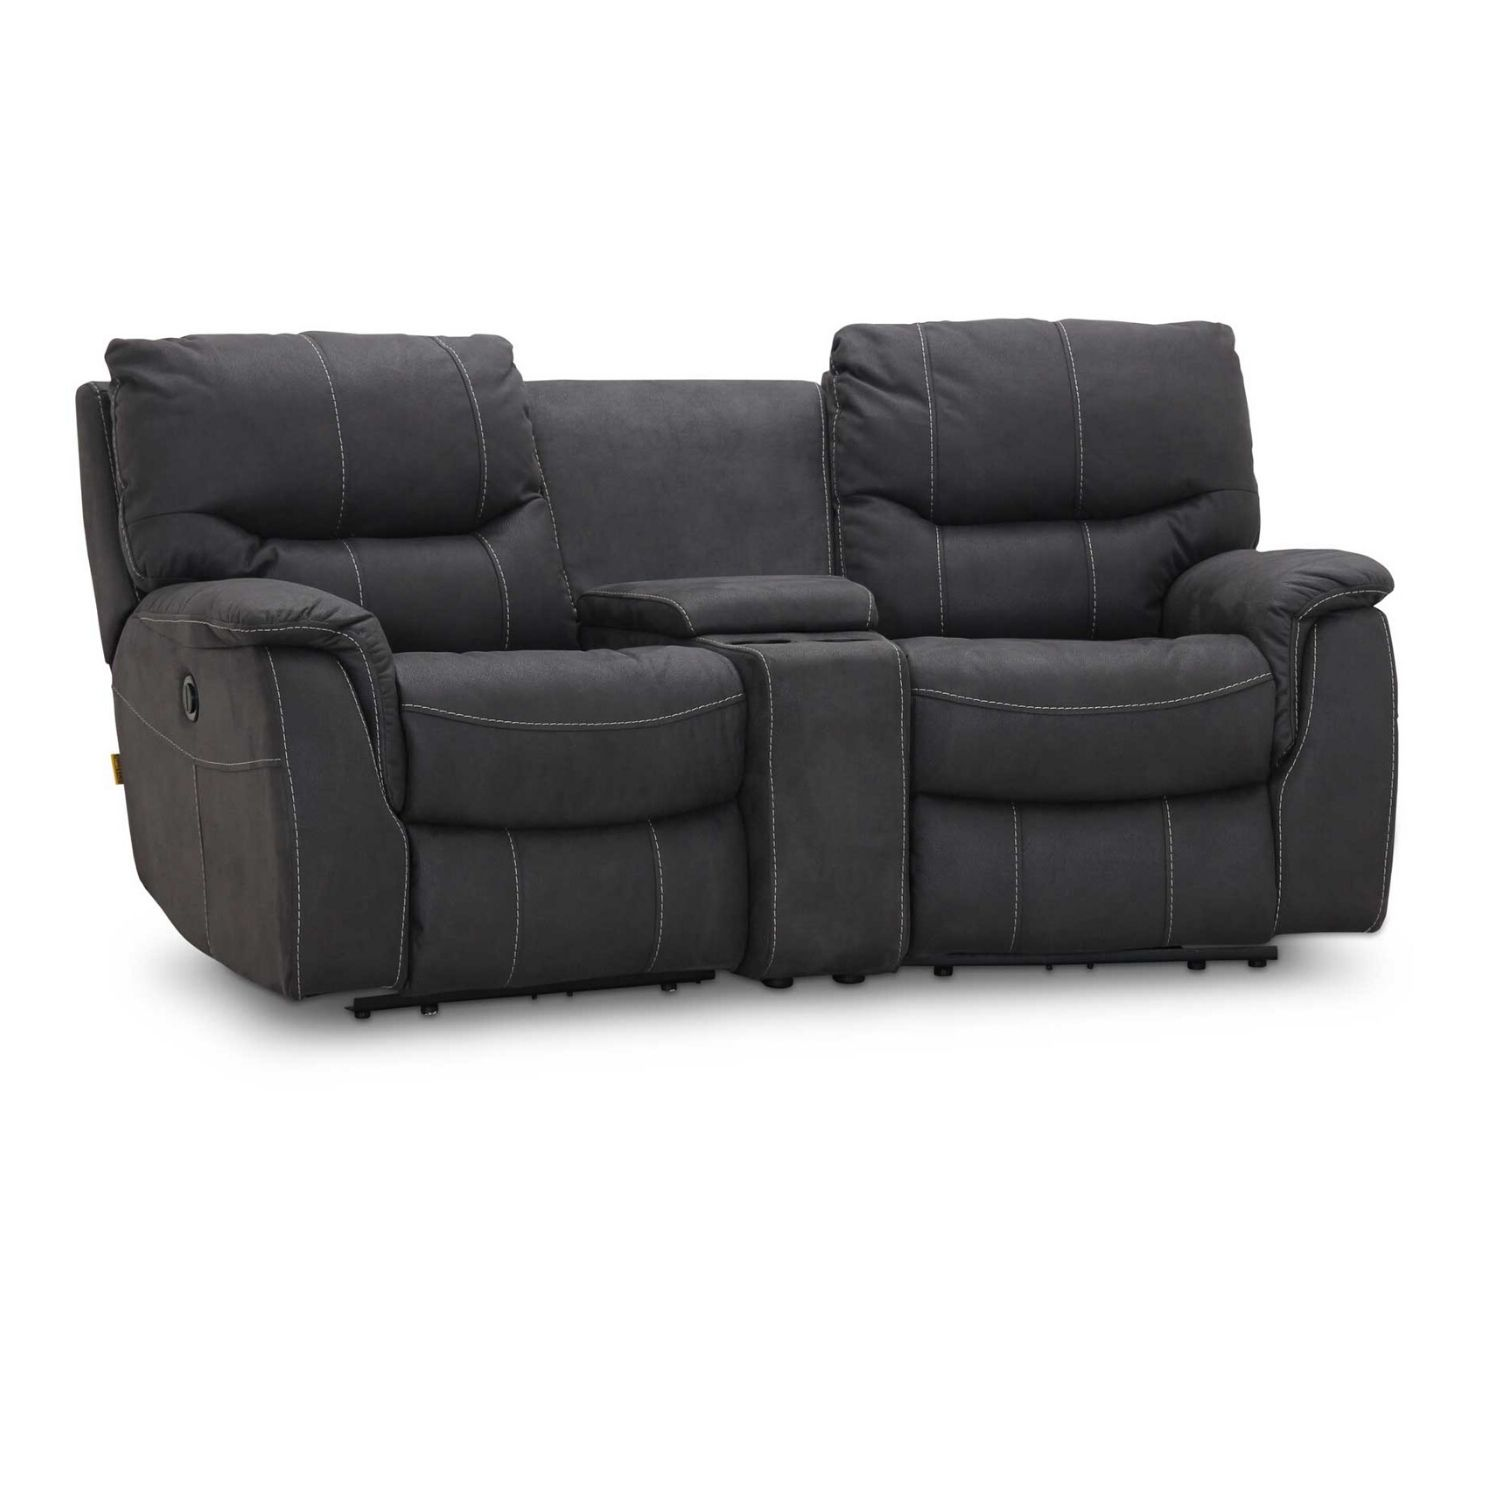 Image of   HAGA Colorado sofa - grafit grå stof, 2 pers., m. recliner funktion